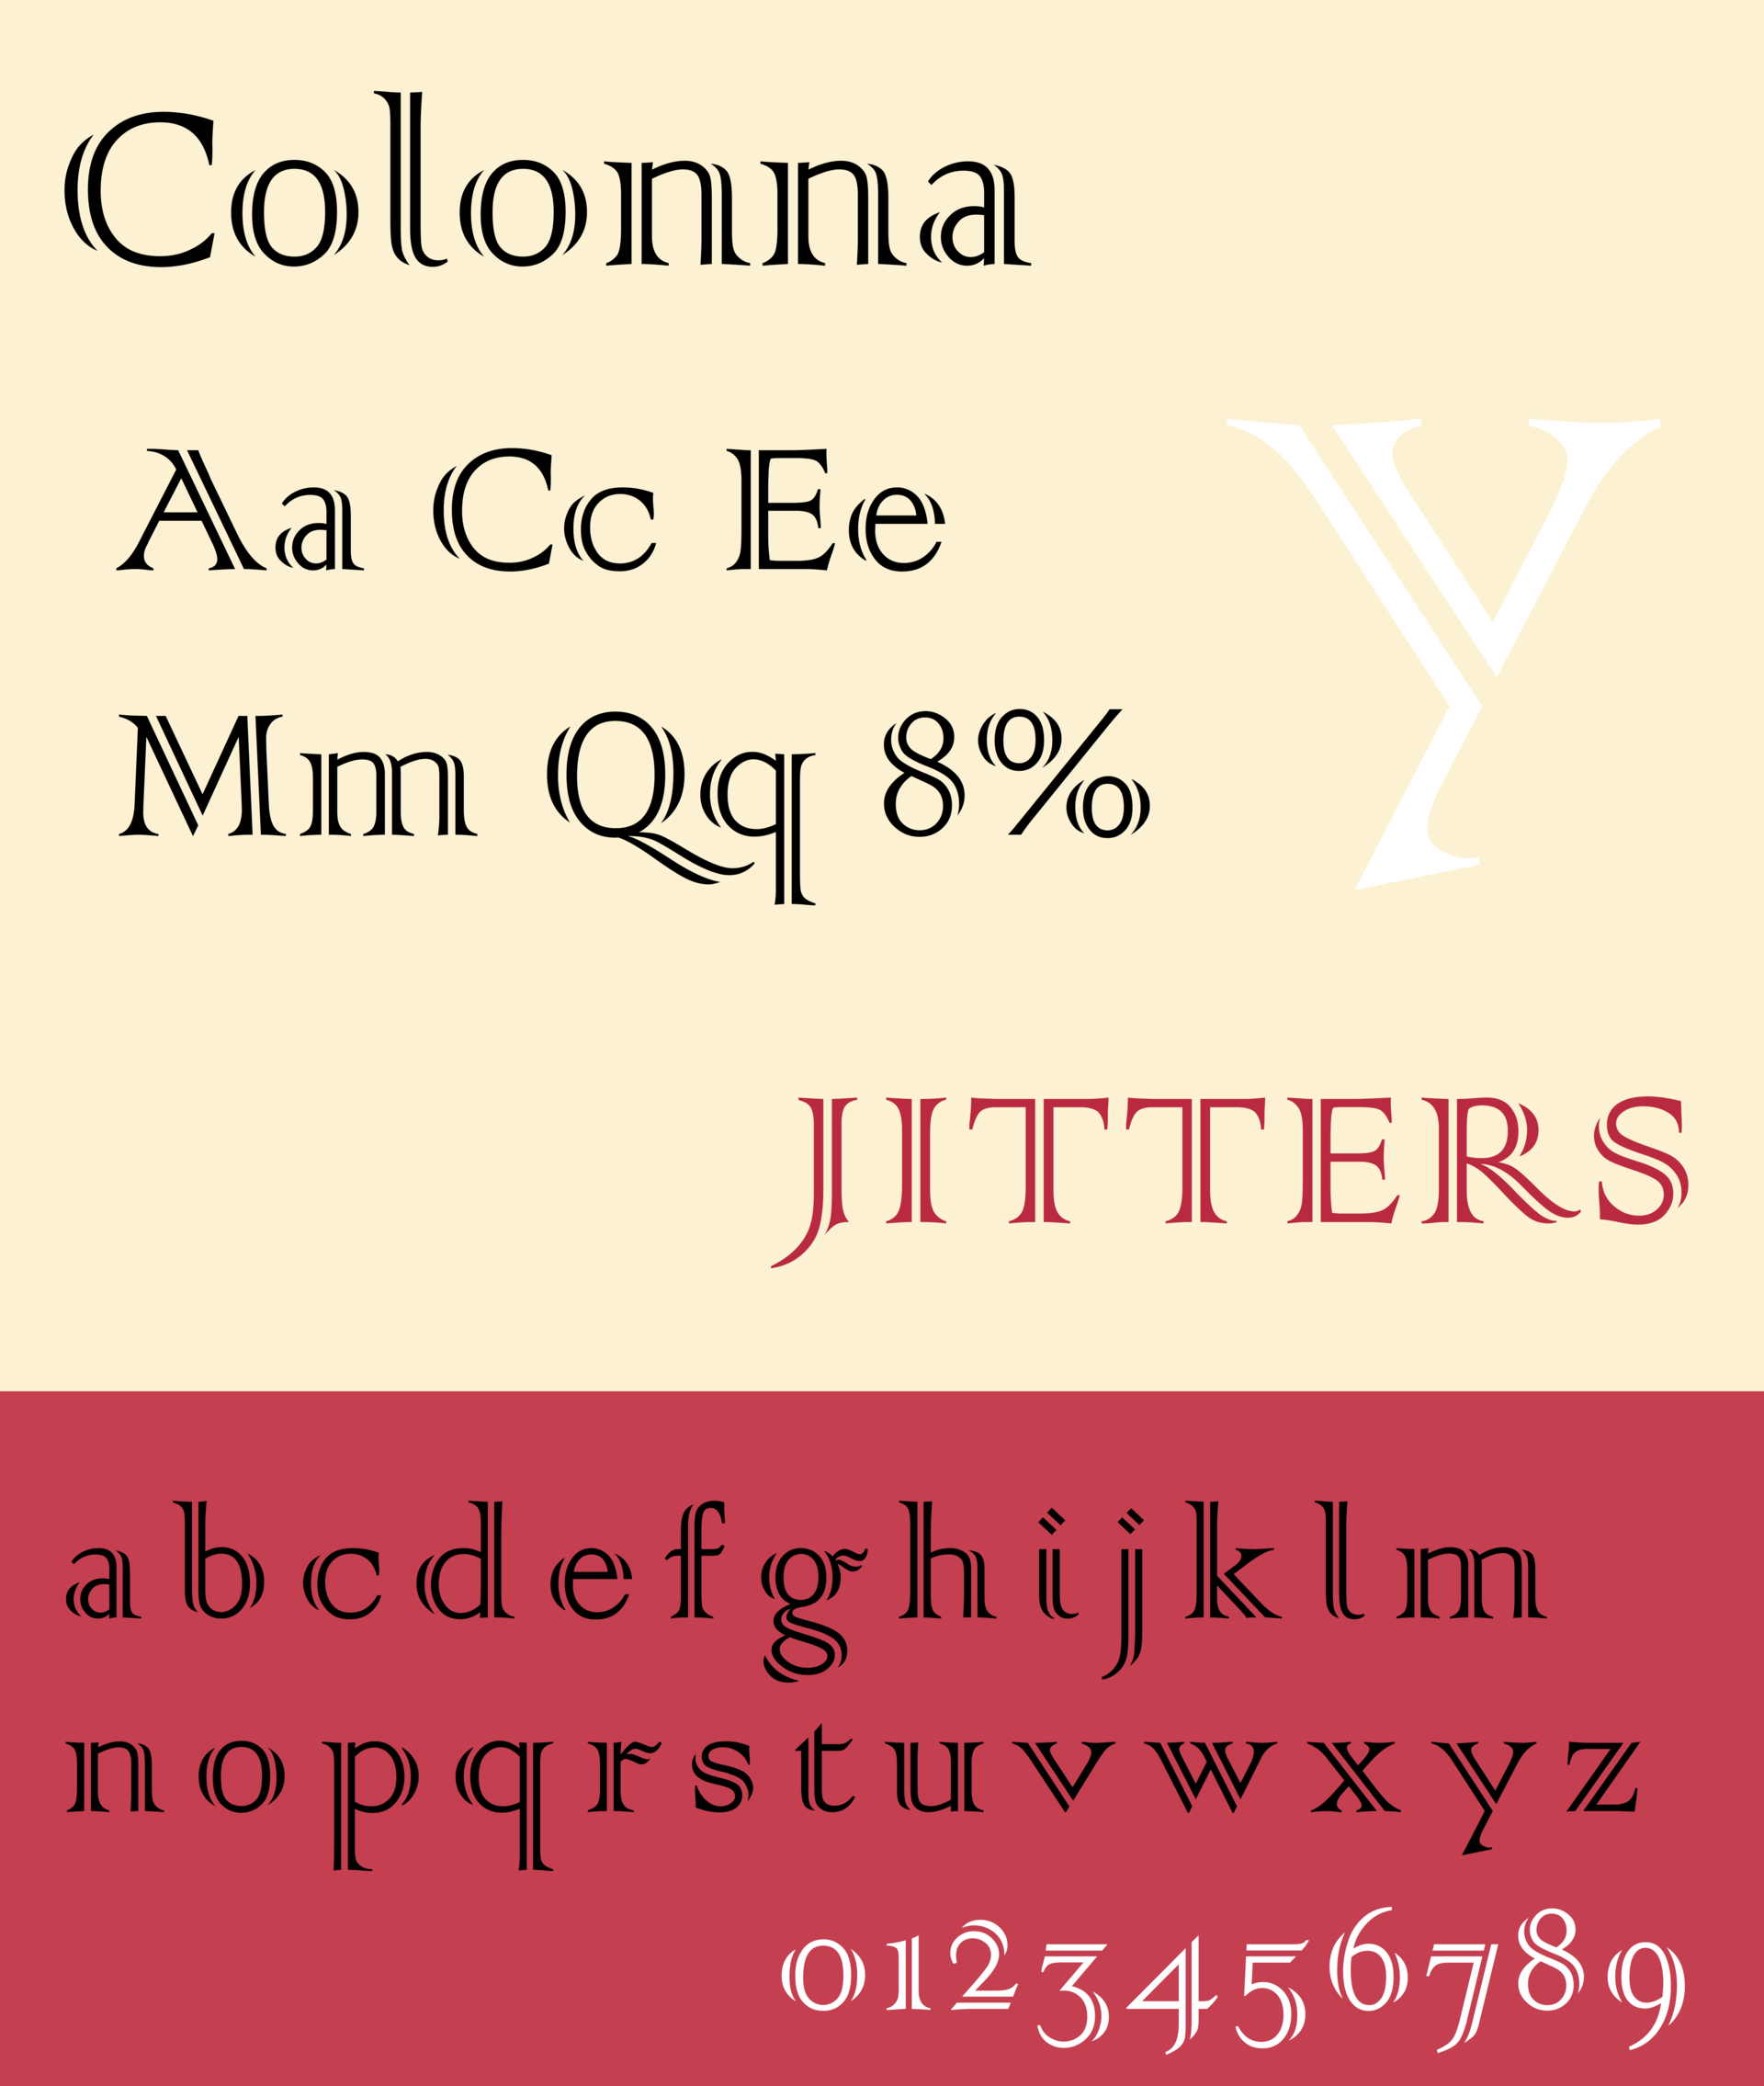 colonna typeface wikipedia